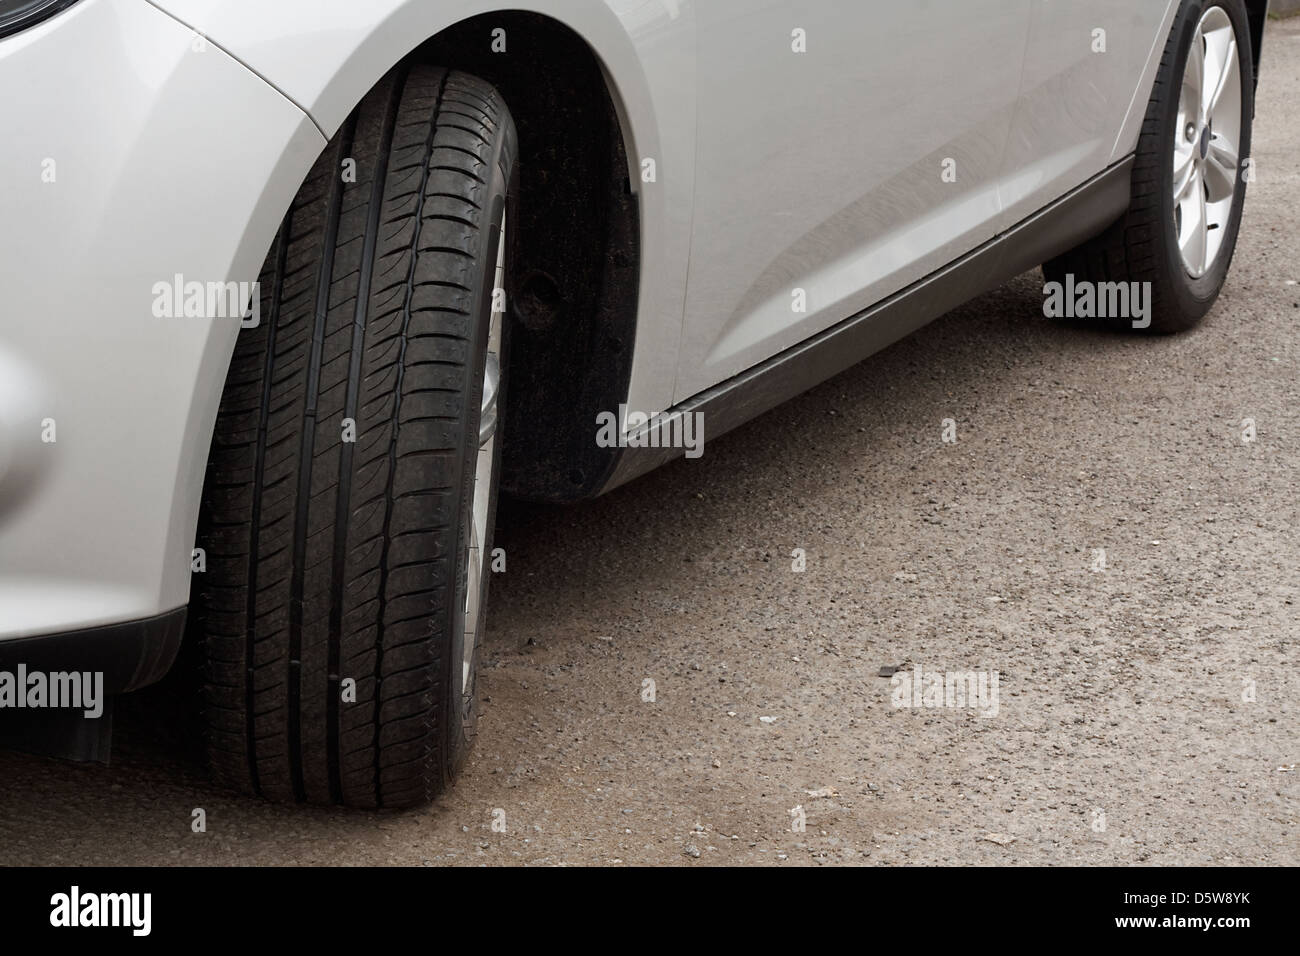 brand new set of unworn tyres on a motor vehicle or car Stock Photo